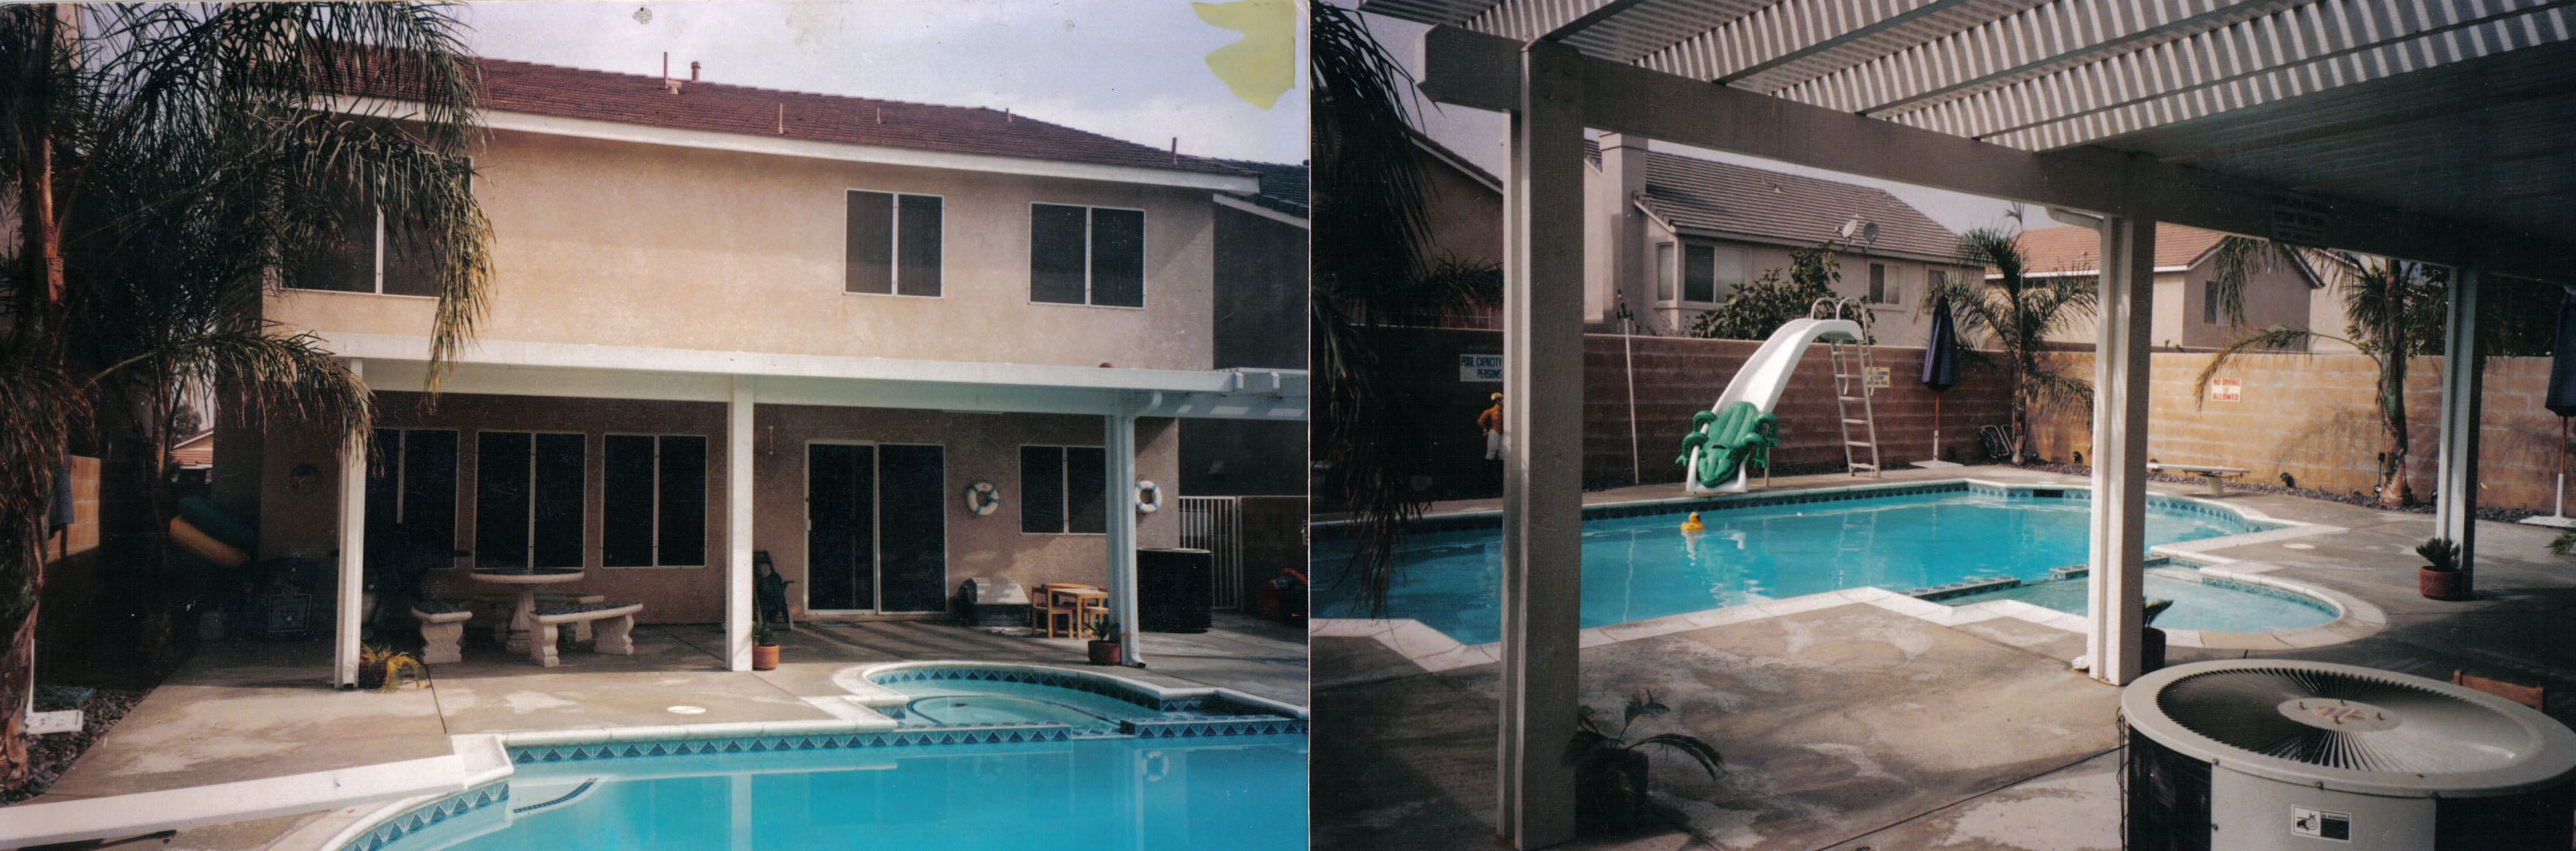 upland pool service